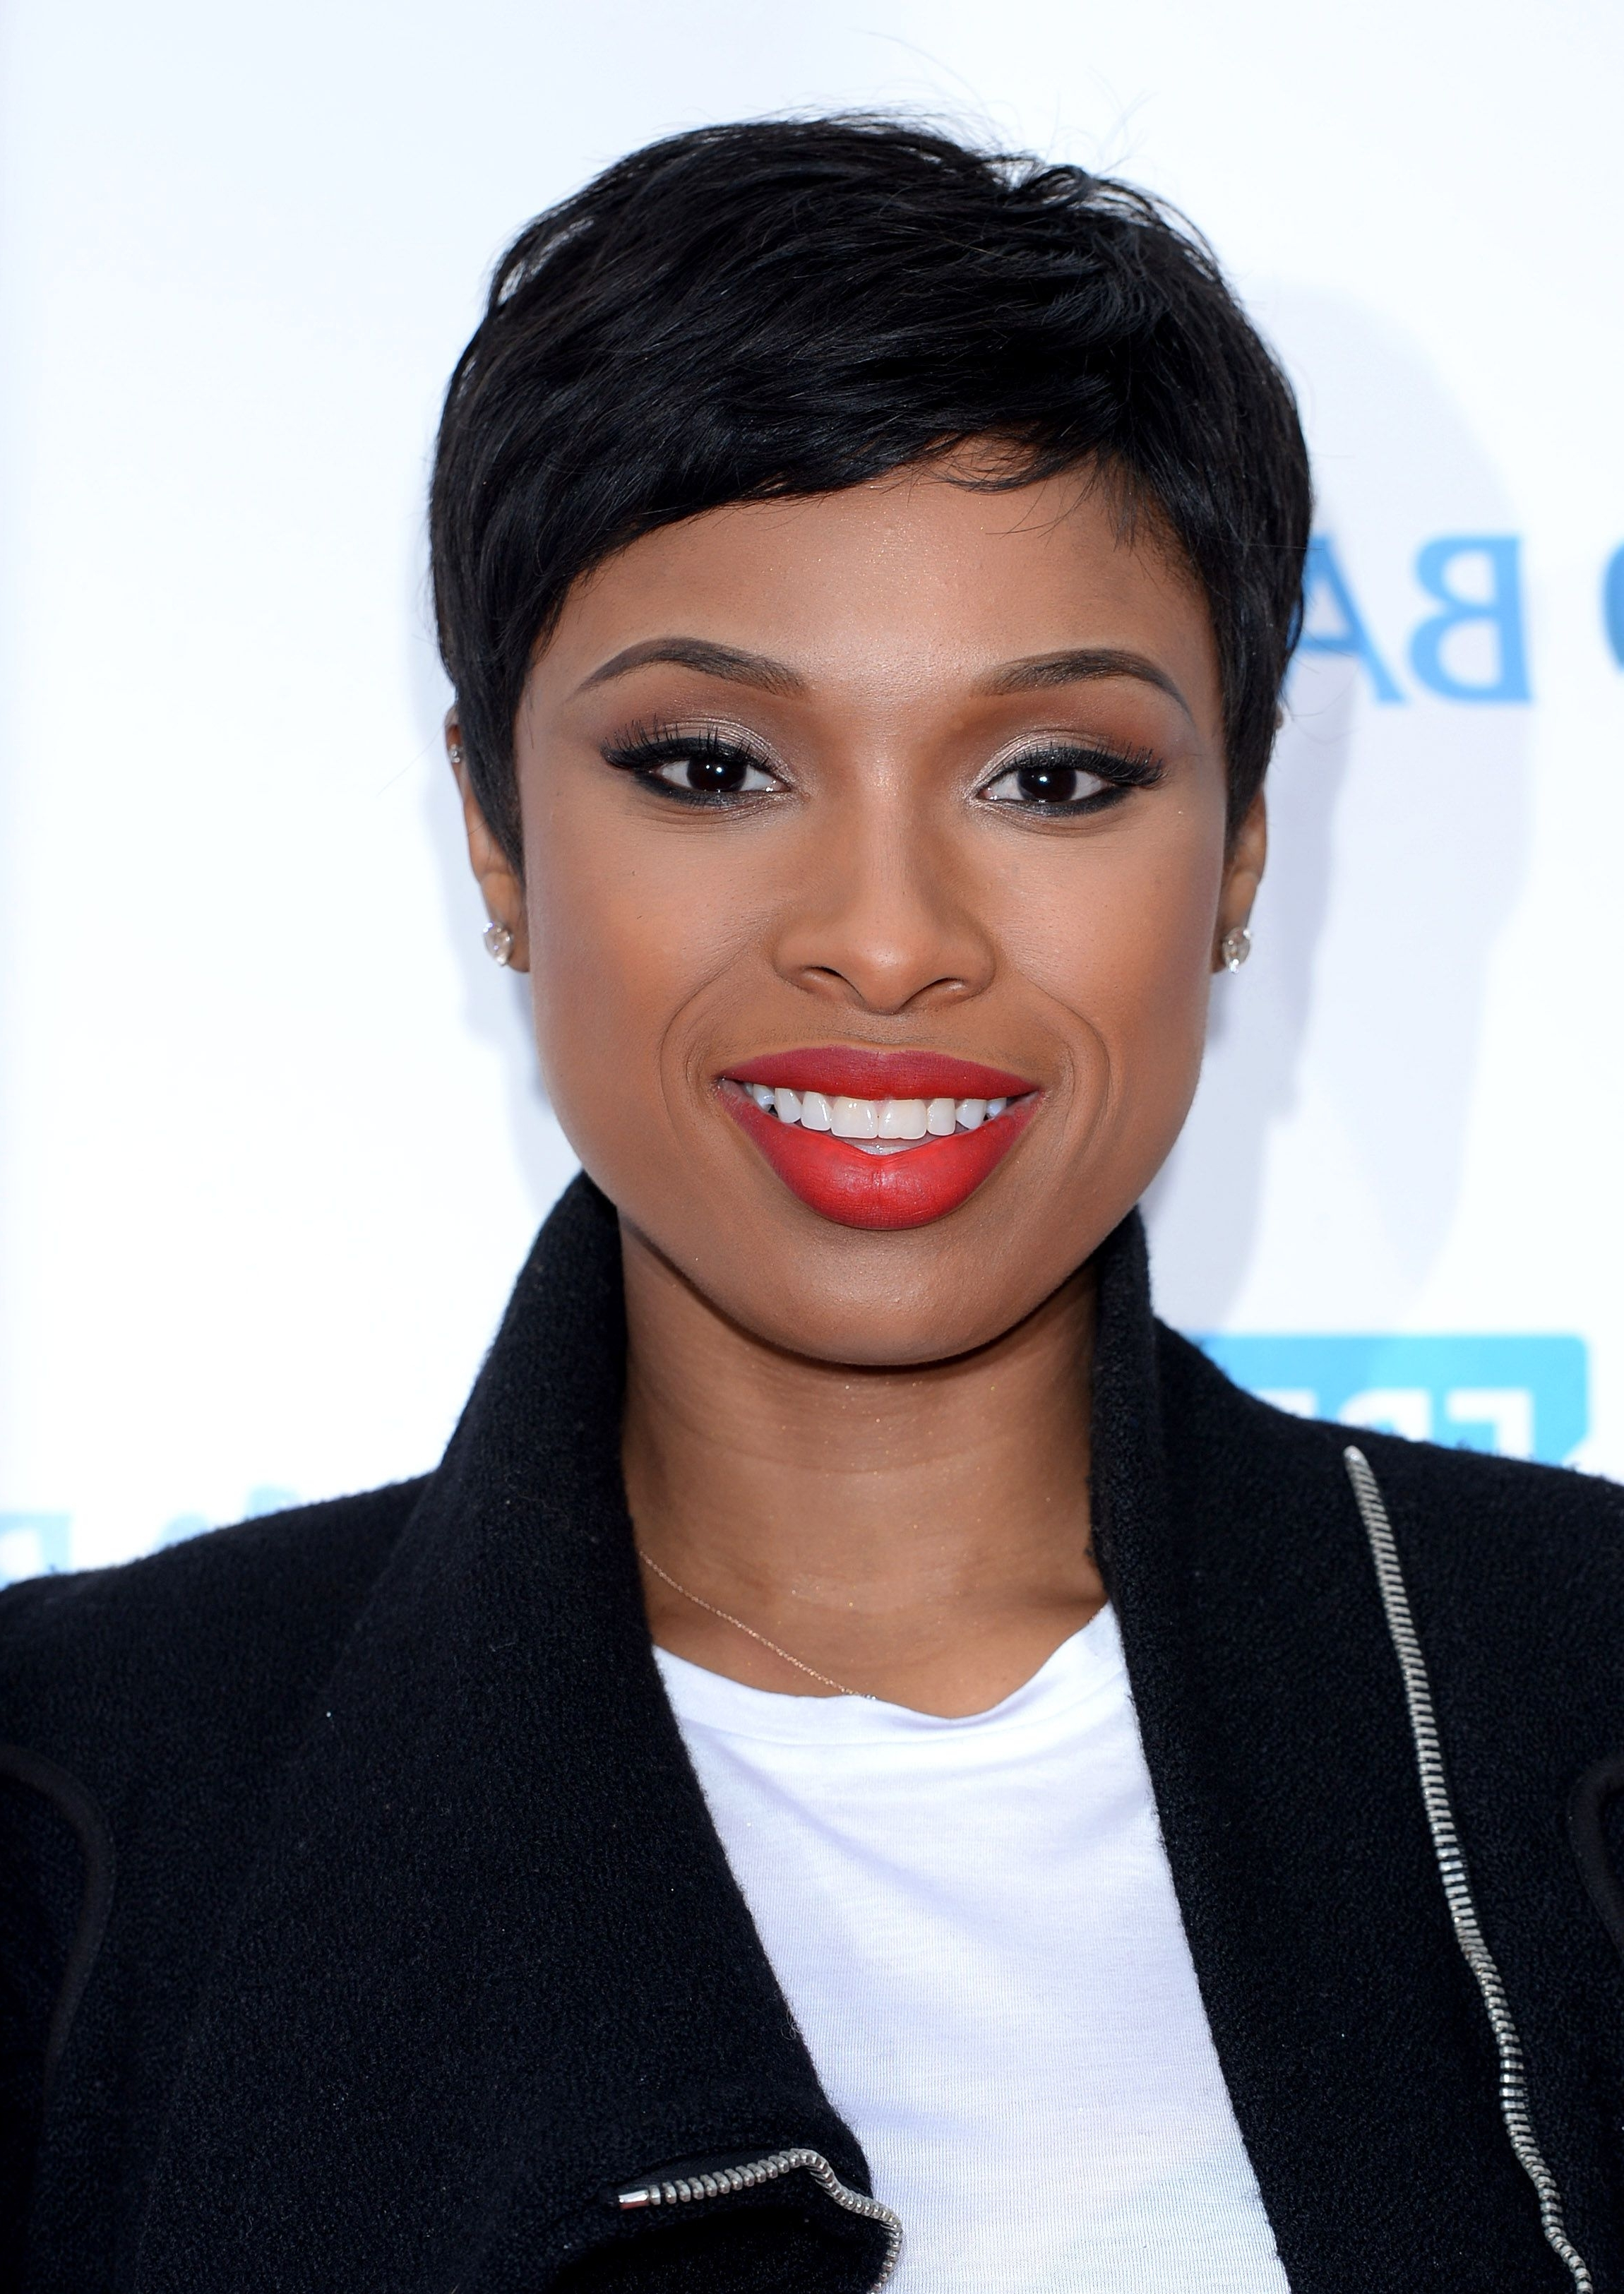 Well Known Long Honey Blonde And Black Pixie Hairstyles Pertaining To 40 Best Short Pixie Cut Hairstyles 2018 – Cute Pixie Haircuts For Women (View 16 of 20)